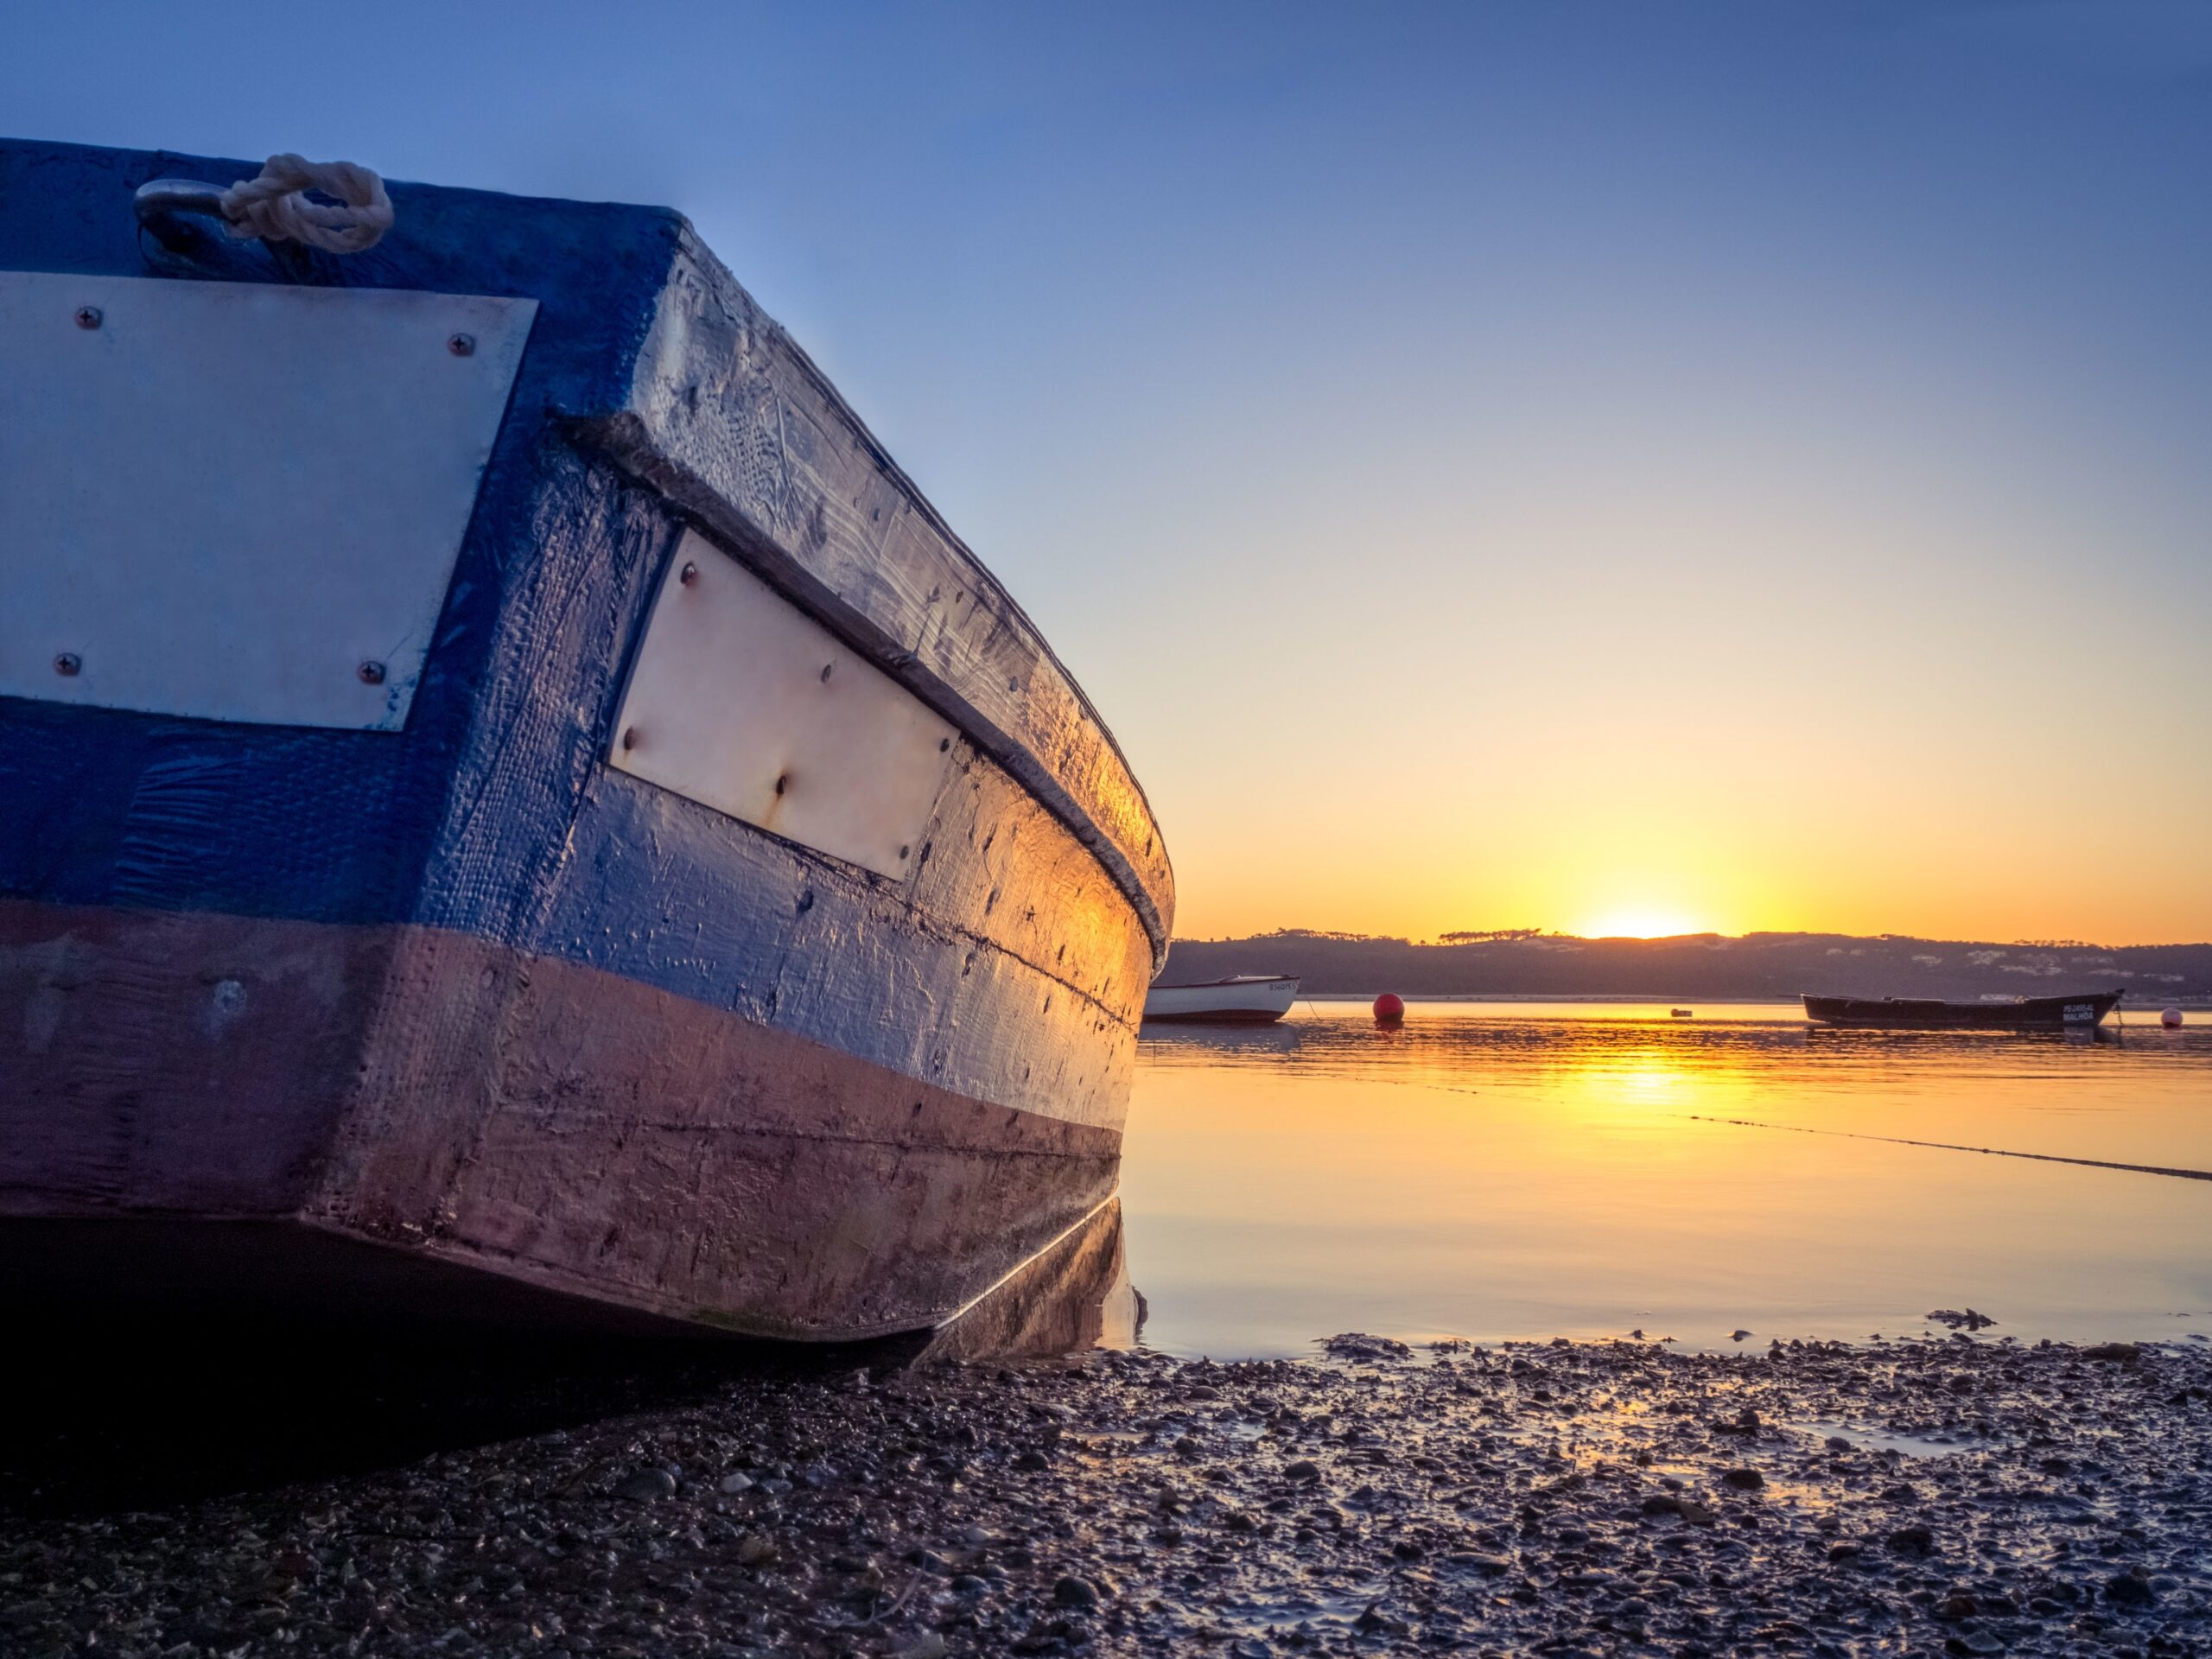 Fishing boat at the river with the beautiful sunset in the background